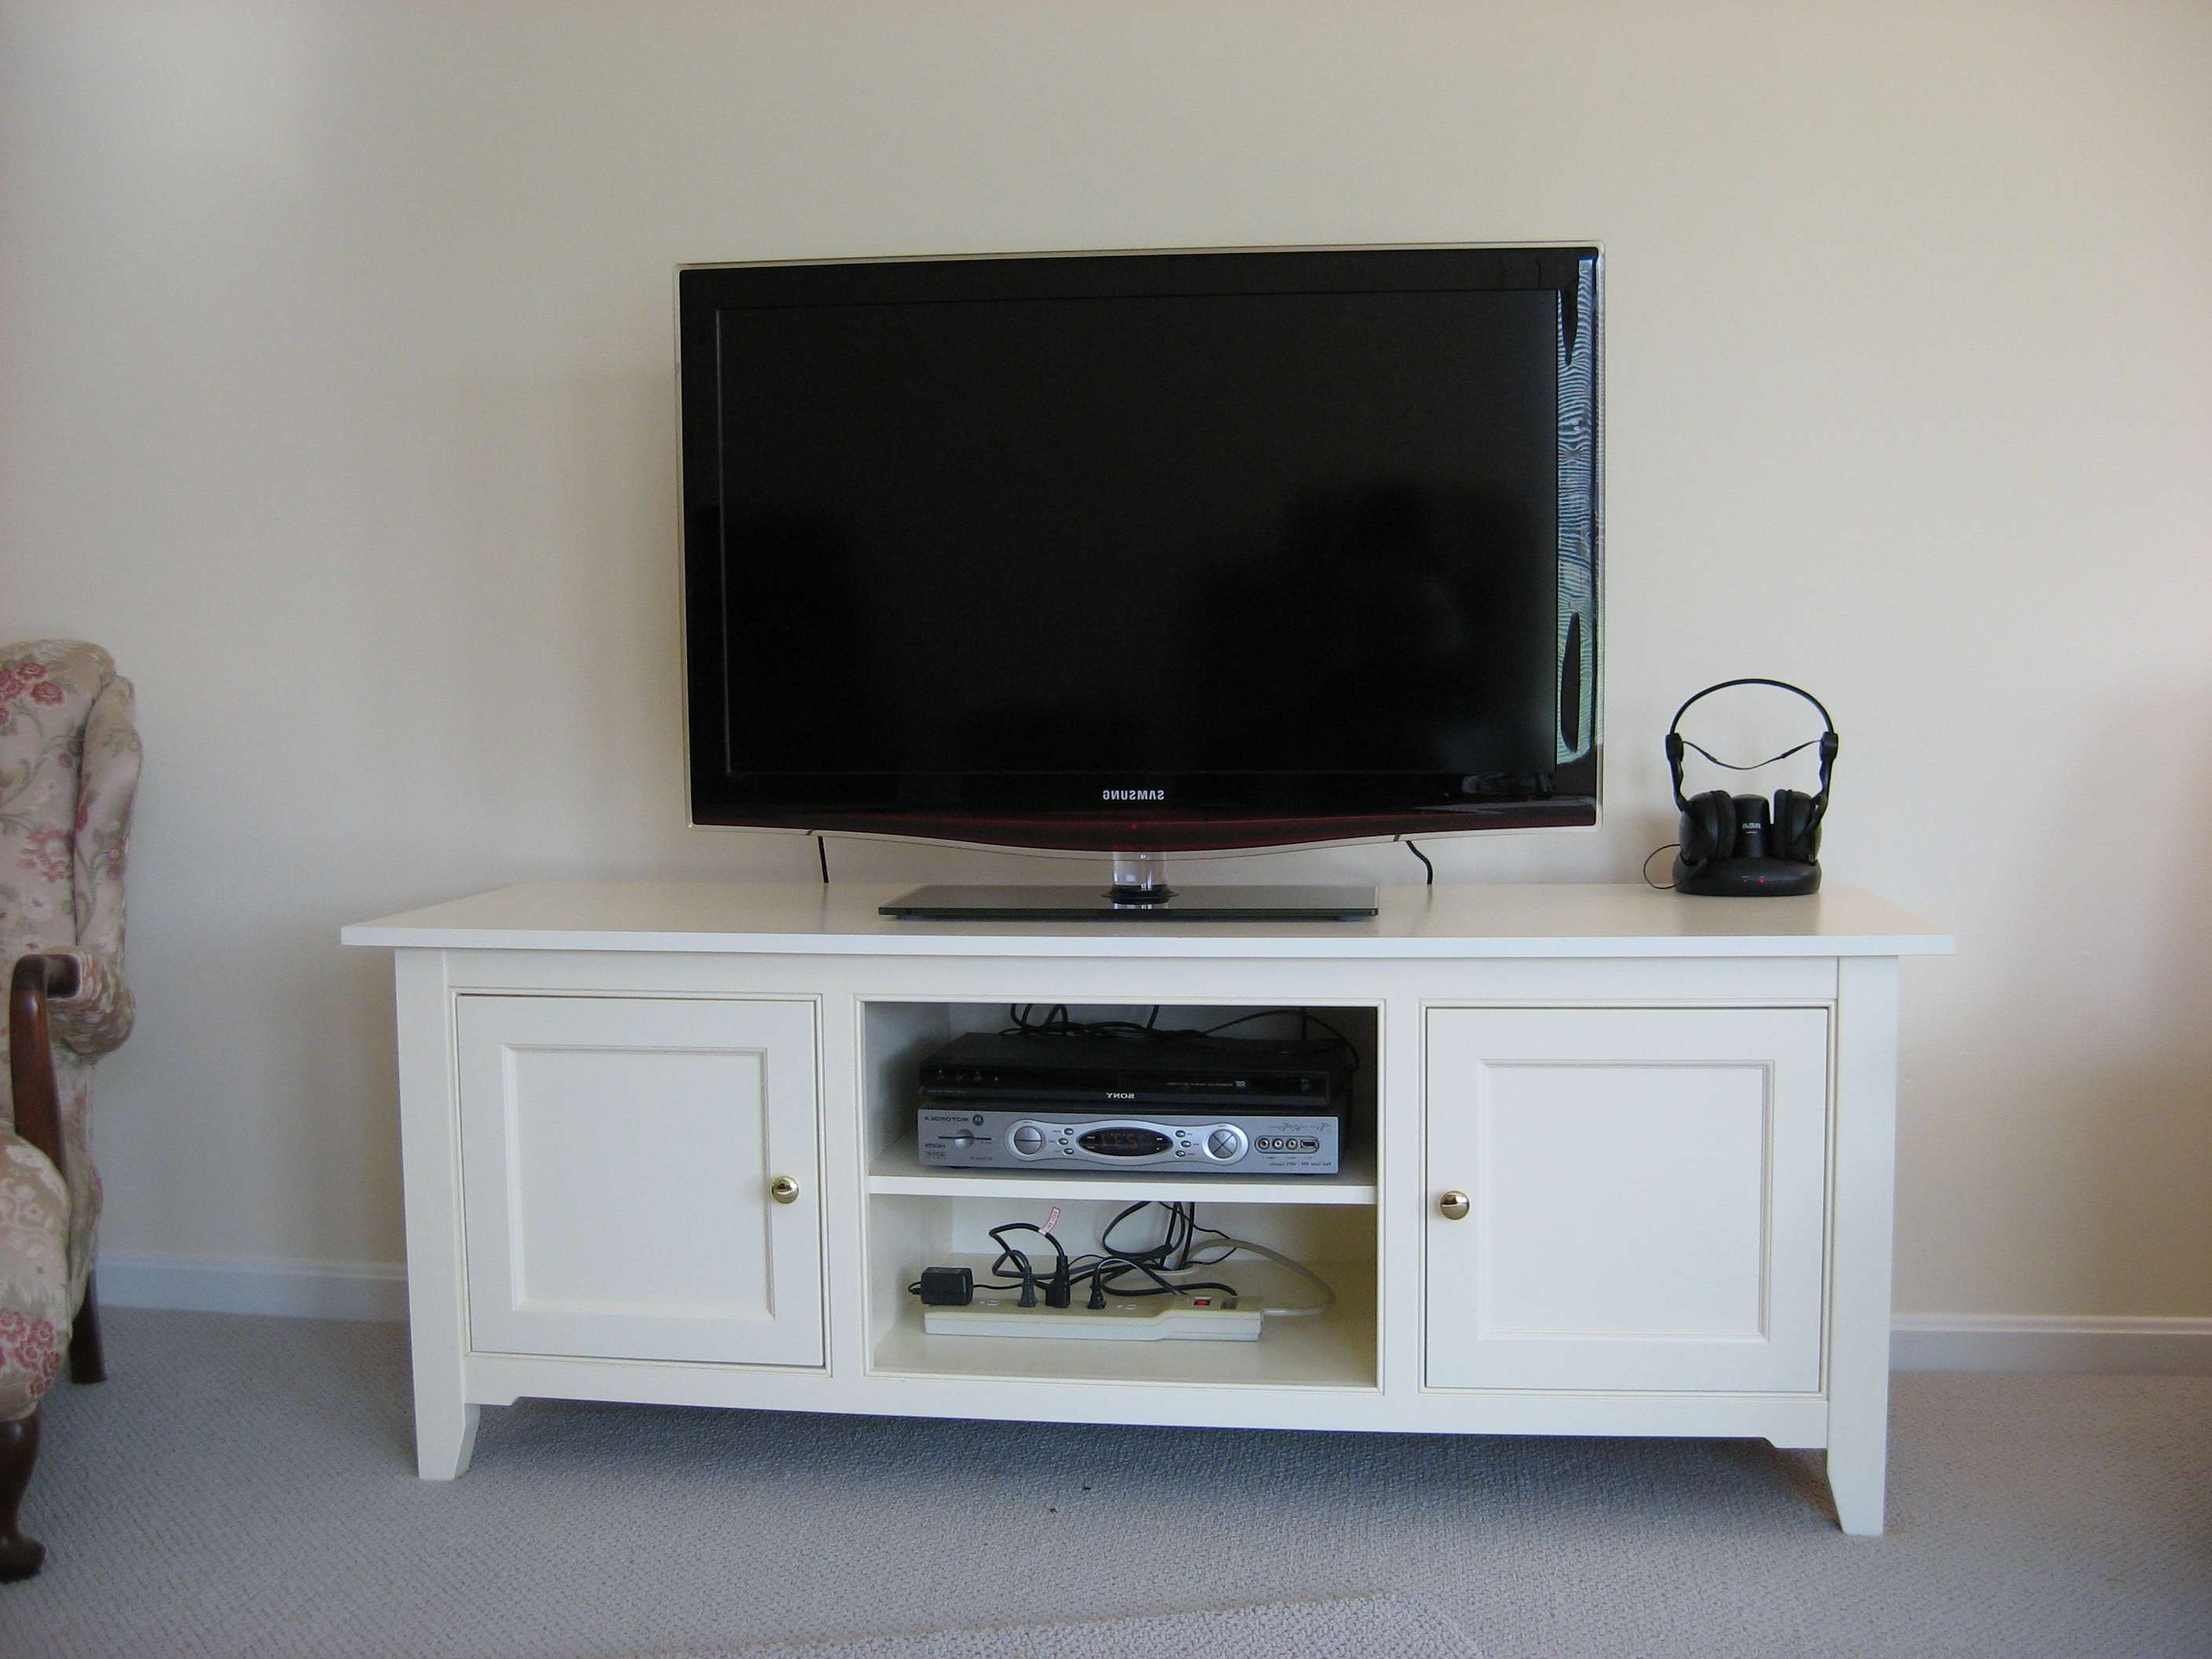 Furniture Black Wooden Tv Stand With Fireplace Having Storage Regarding Tv Cabinets With Storage (View 7 of 20)